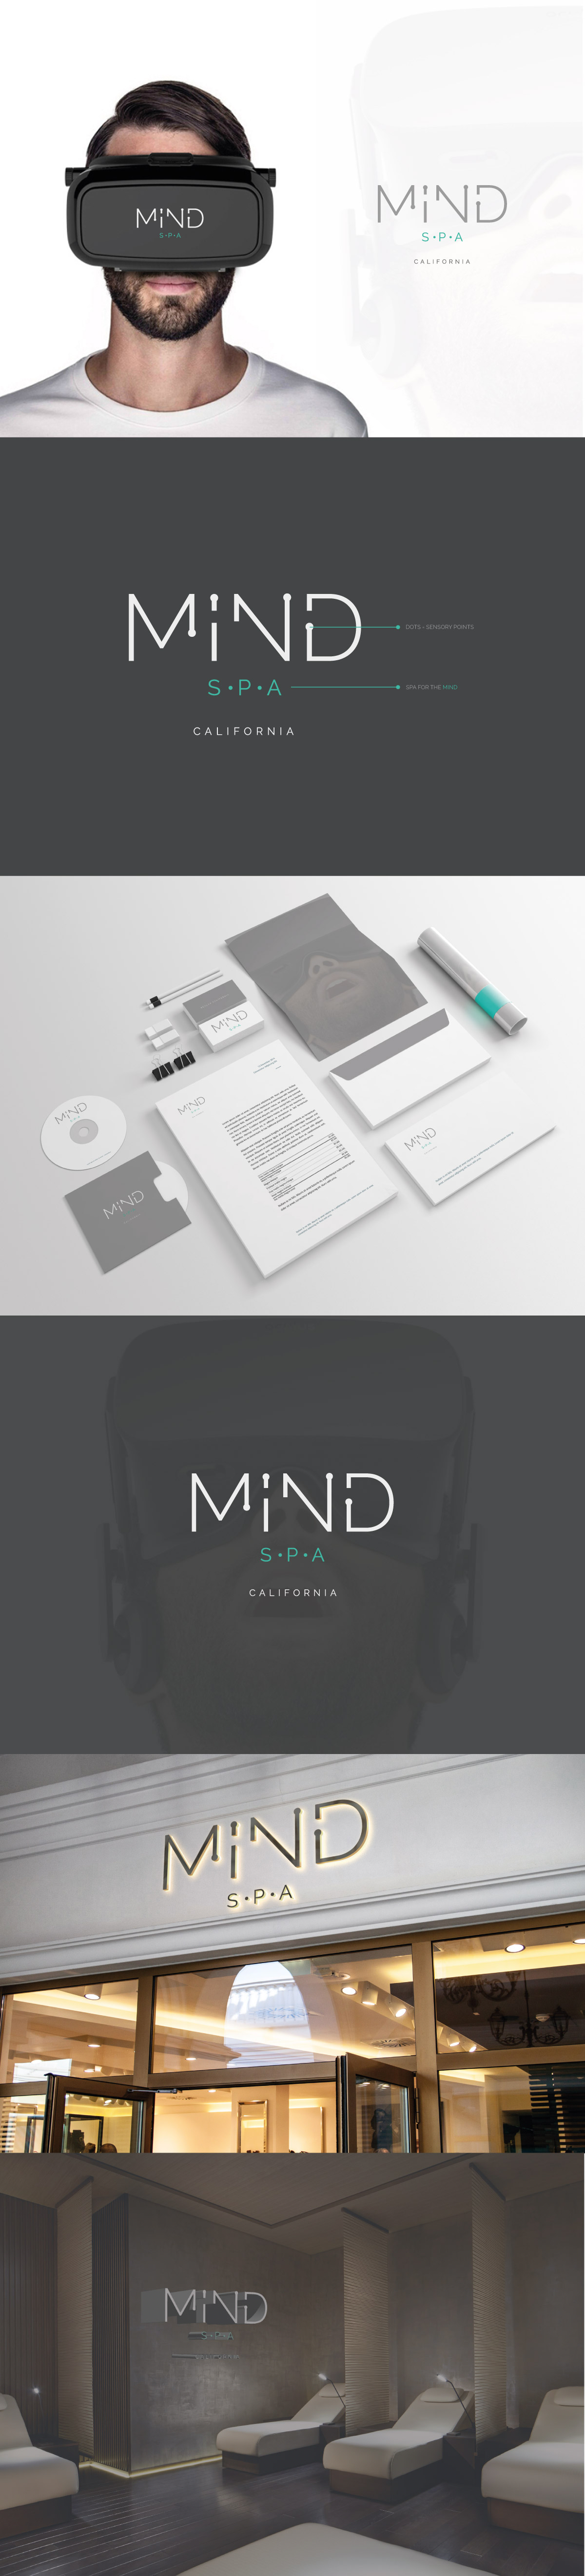 presentacion-MIND-BREAK